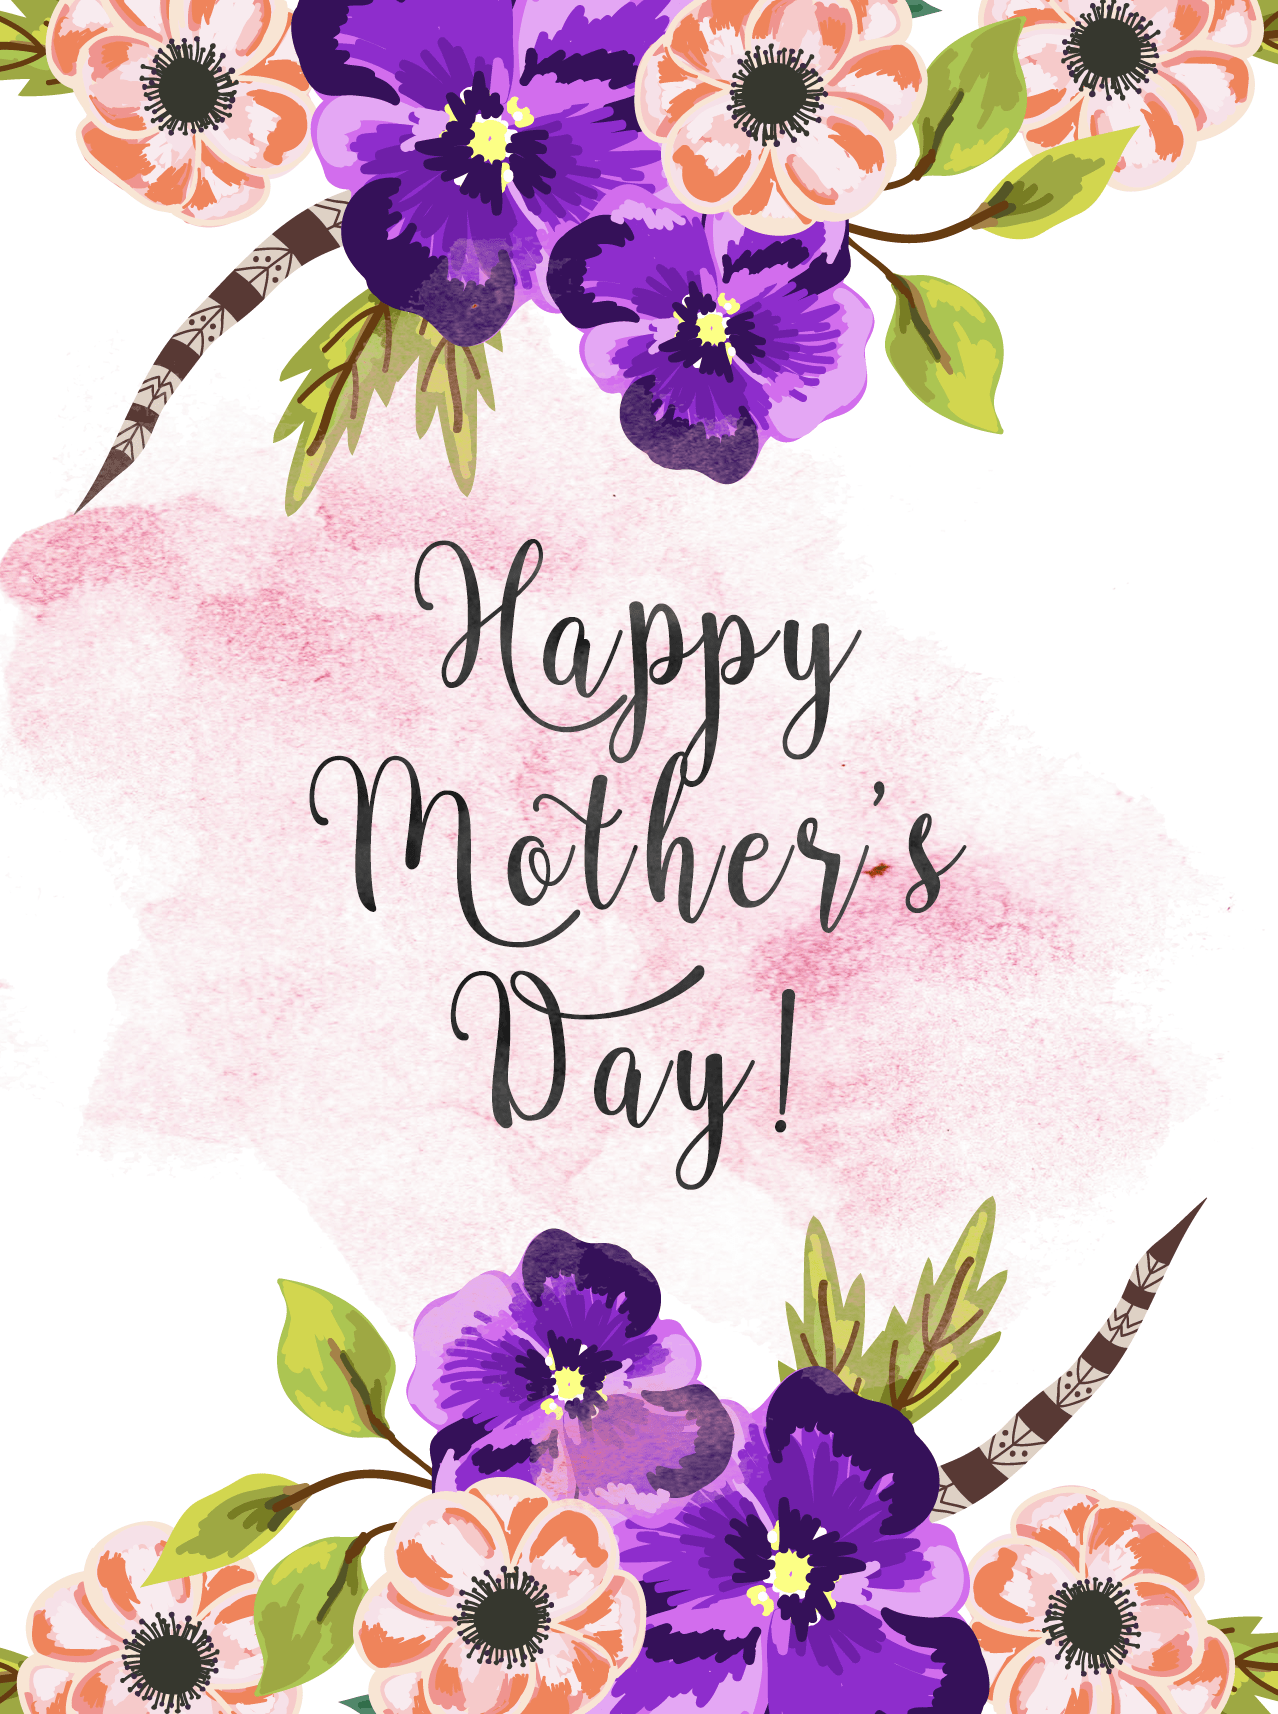 Happy Mothers Day Card Grandma Printable Printablemothersdaycardforaunt Support Our Free Mothers Day Cards Mother S Day Gift Card Mothers Day Cards Printable